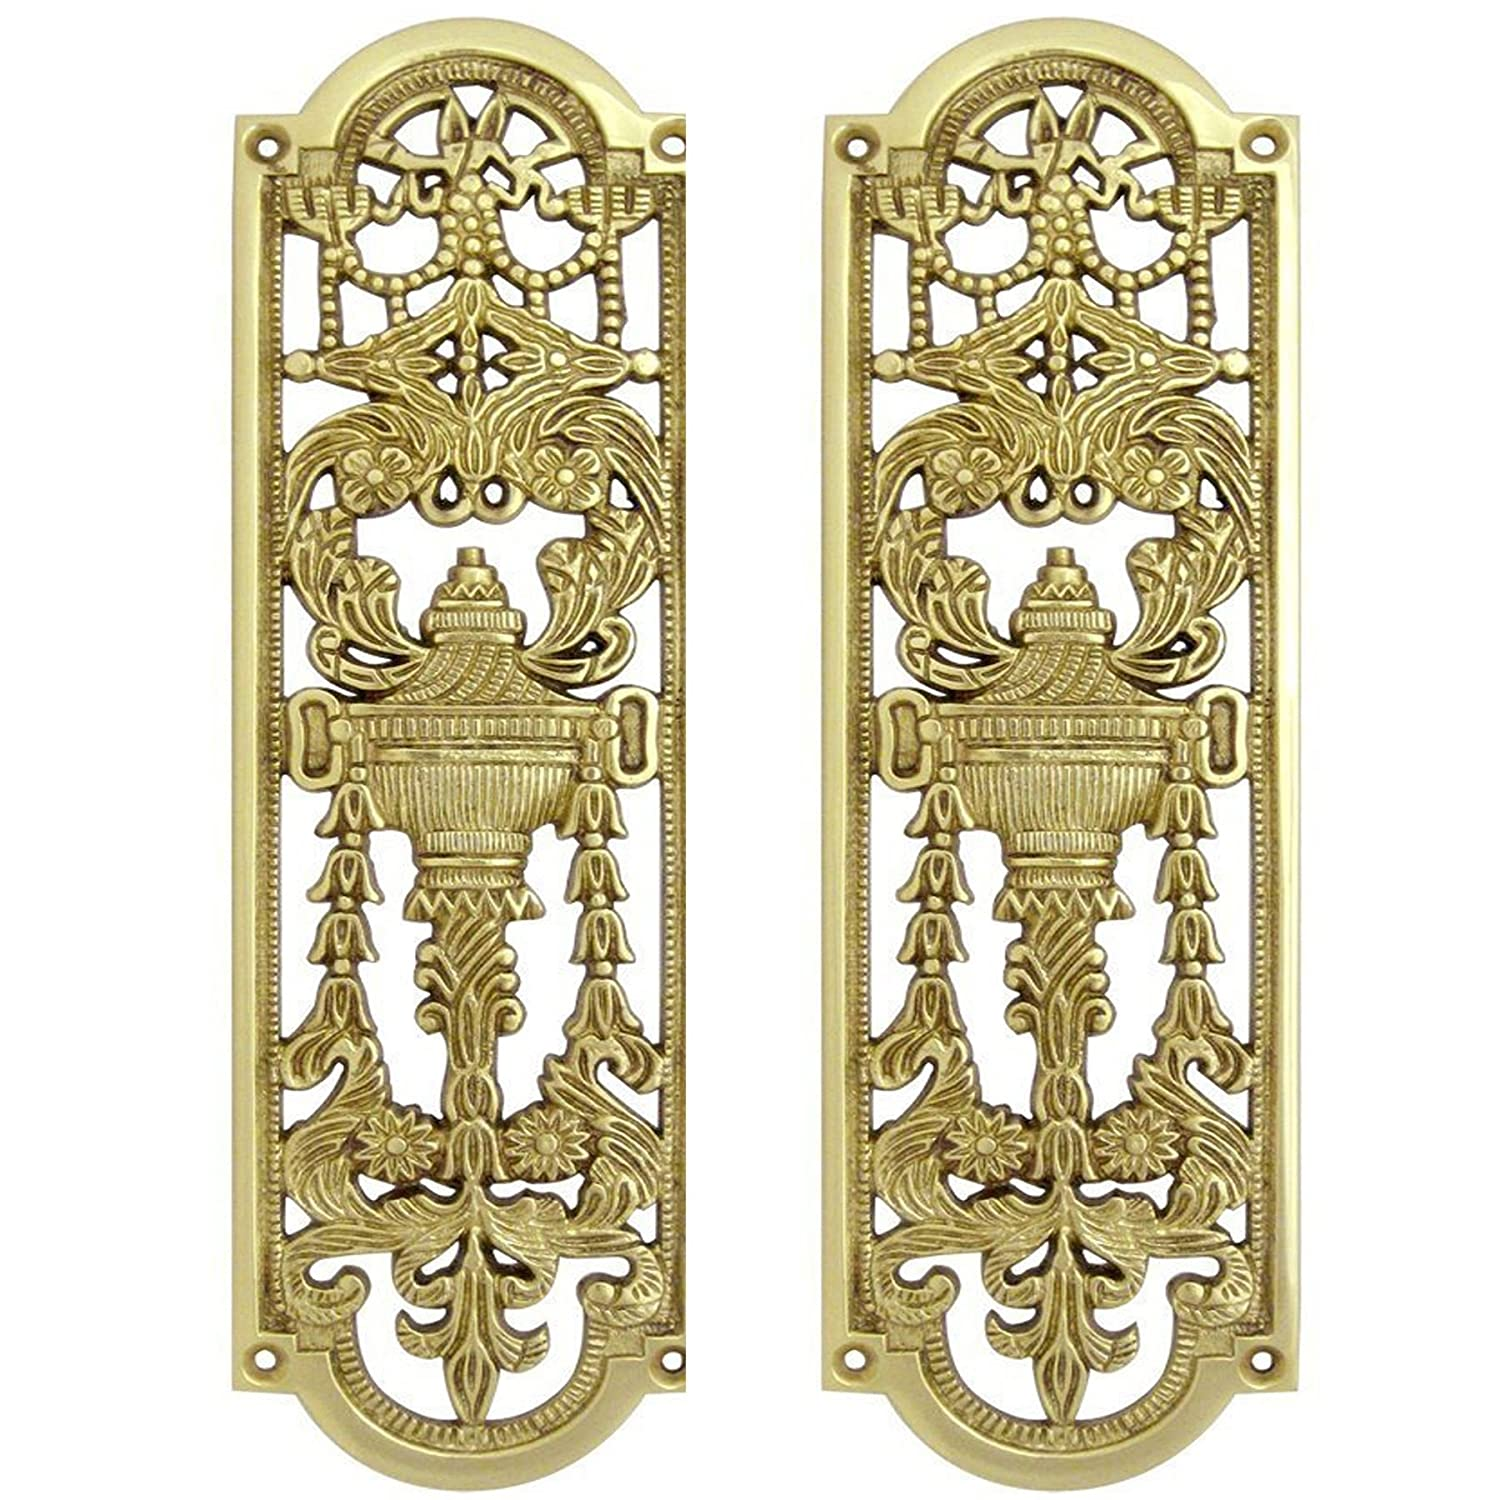 2x Solid Brass Finger Push Plate Quality Ornate Antique Design Style Door Handle White Hinge